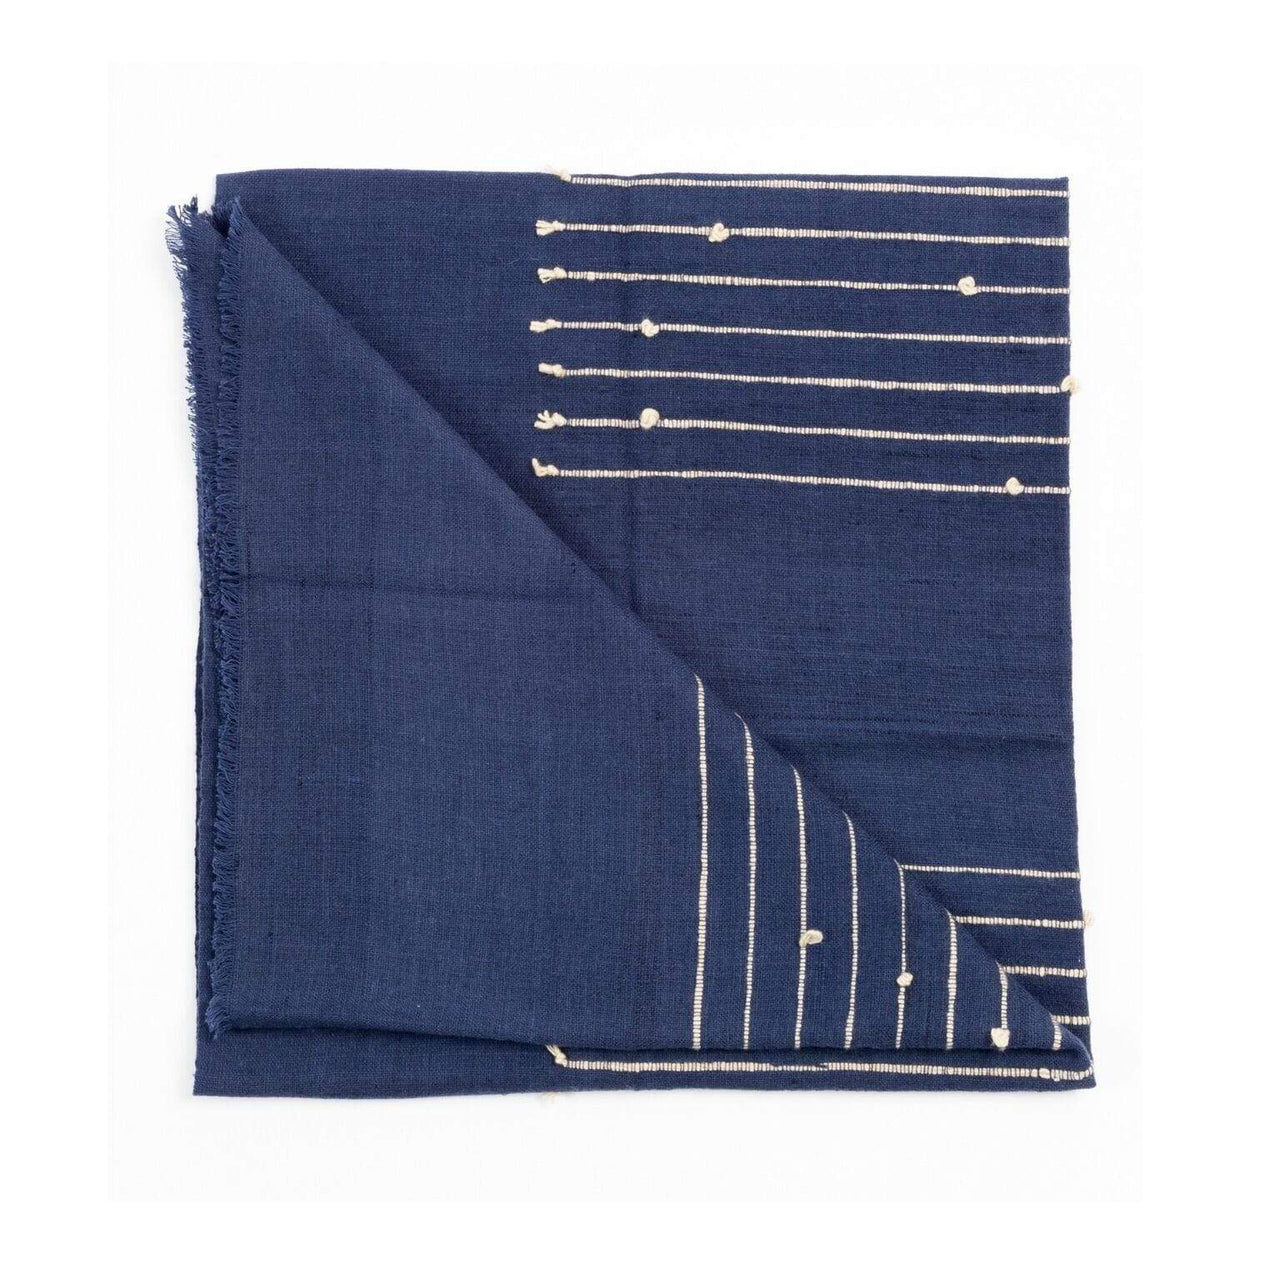 Studio Variously Cushions & Throws Indigo Rosewood Merino and Cotton Throw